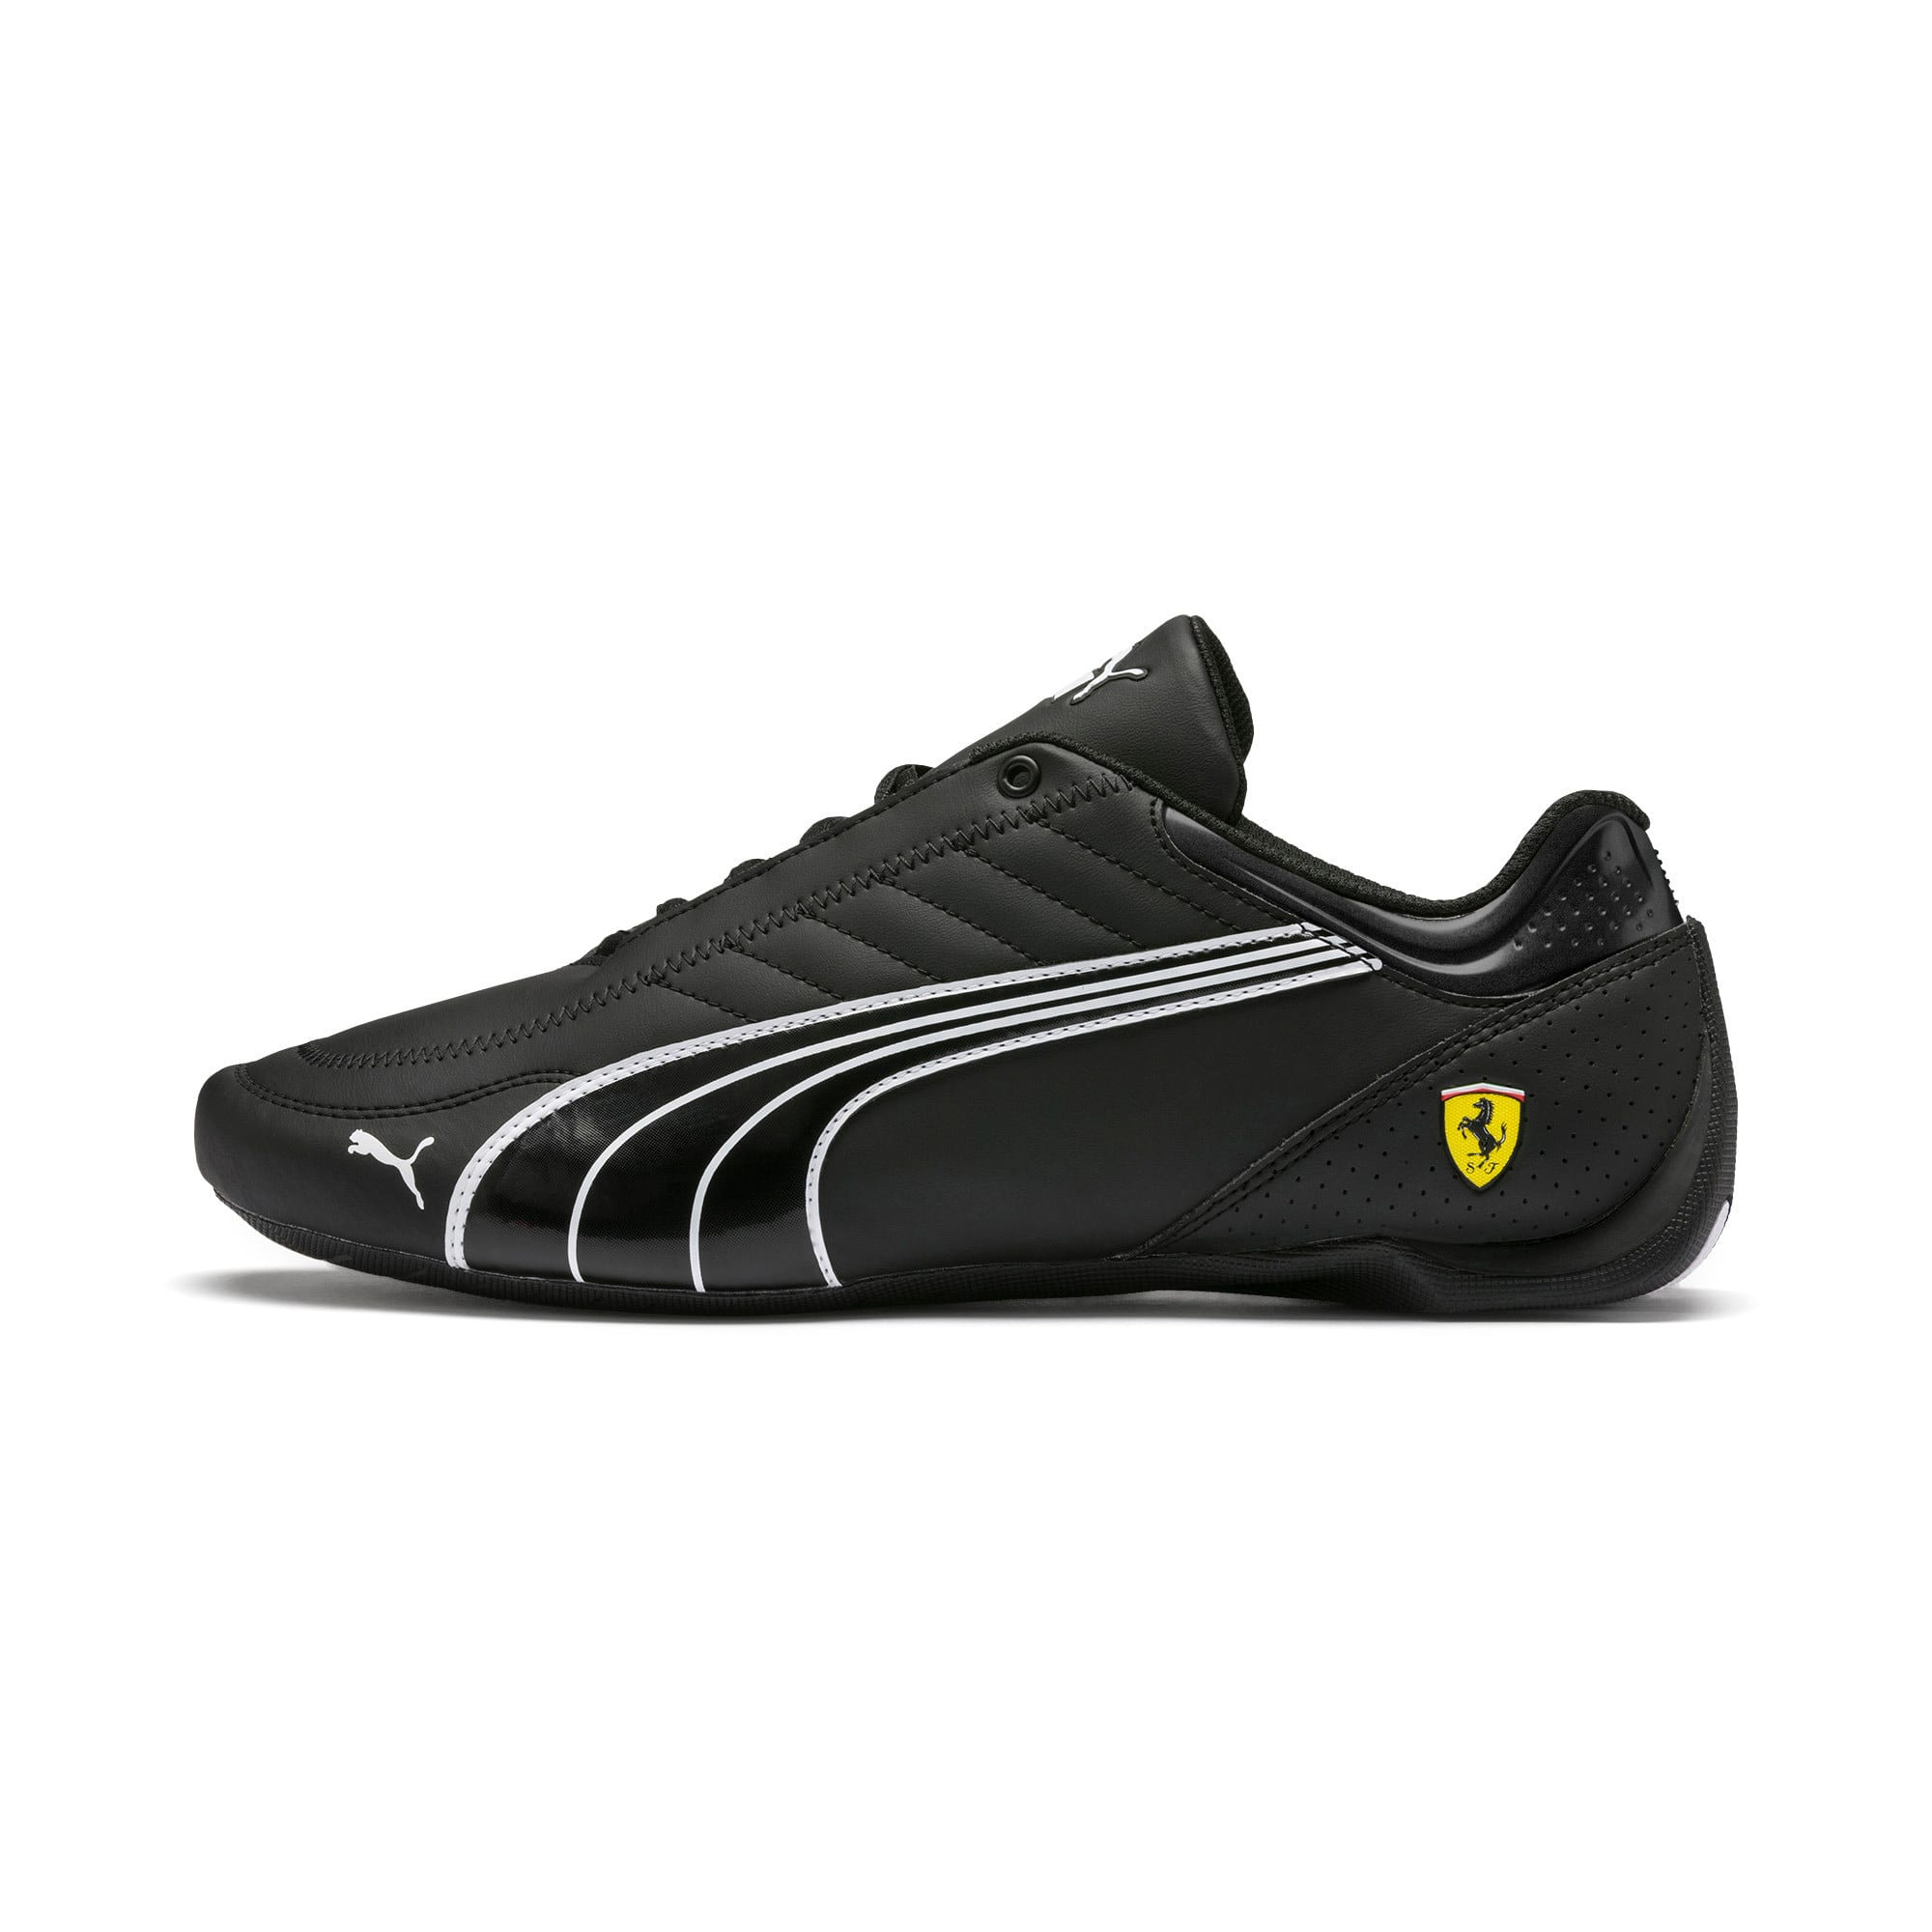 Thumbnail 1 of Ferrari Future Kart Cat Trainers, Black-Puma White-Rosso Corsa, medium